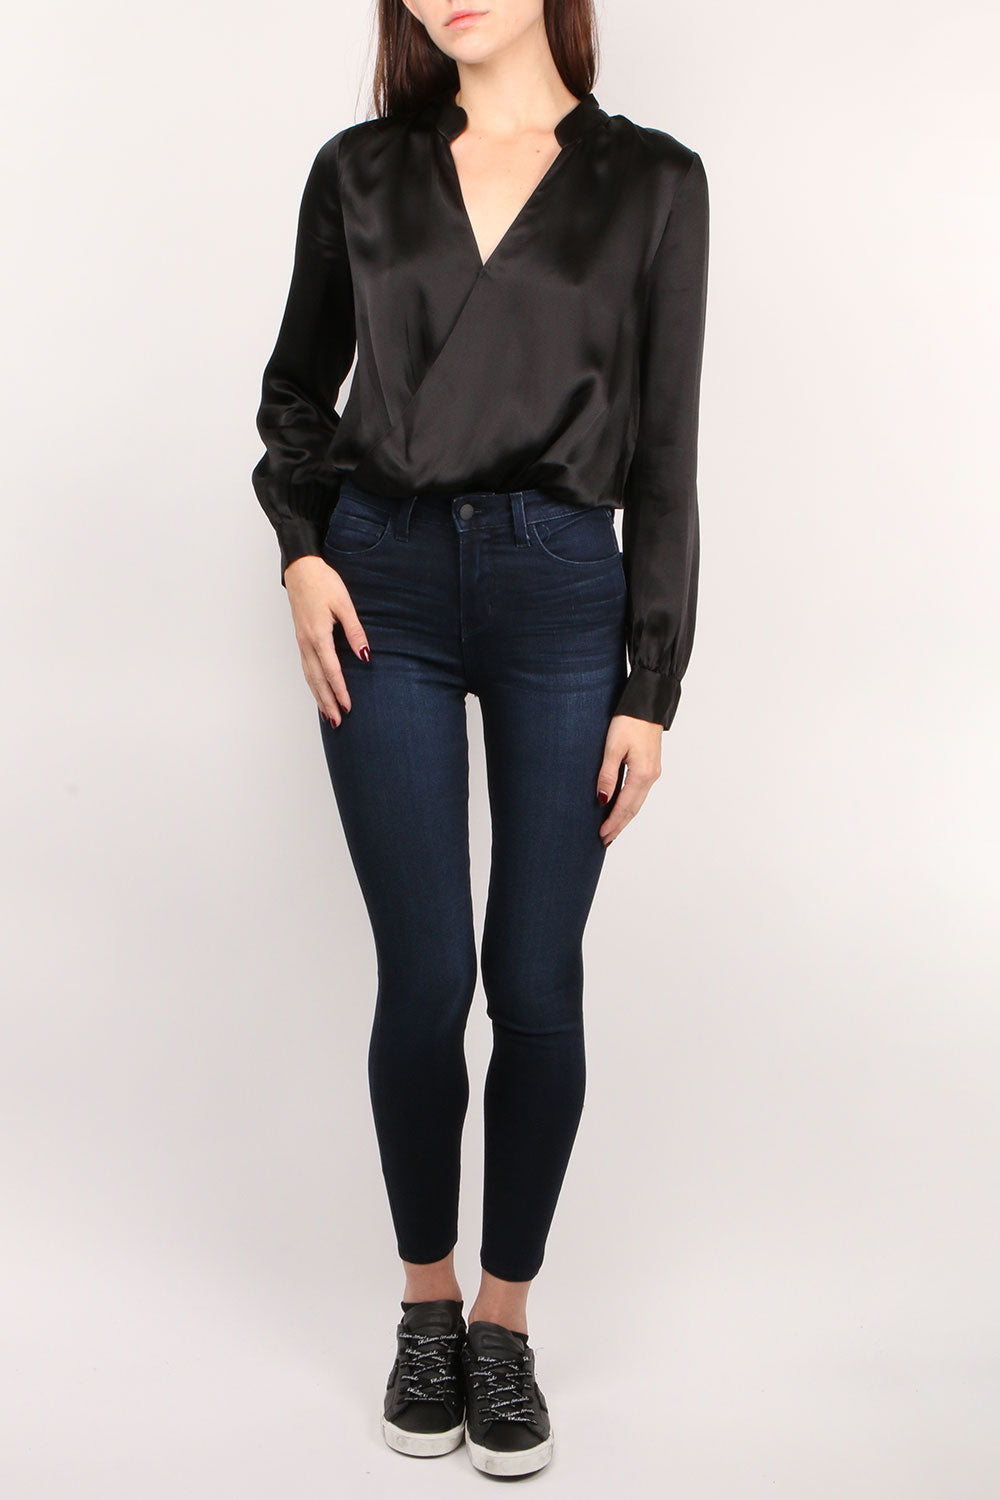 Marcella Black Bodysuit